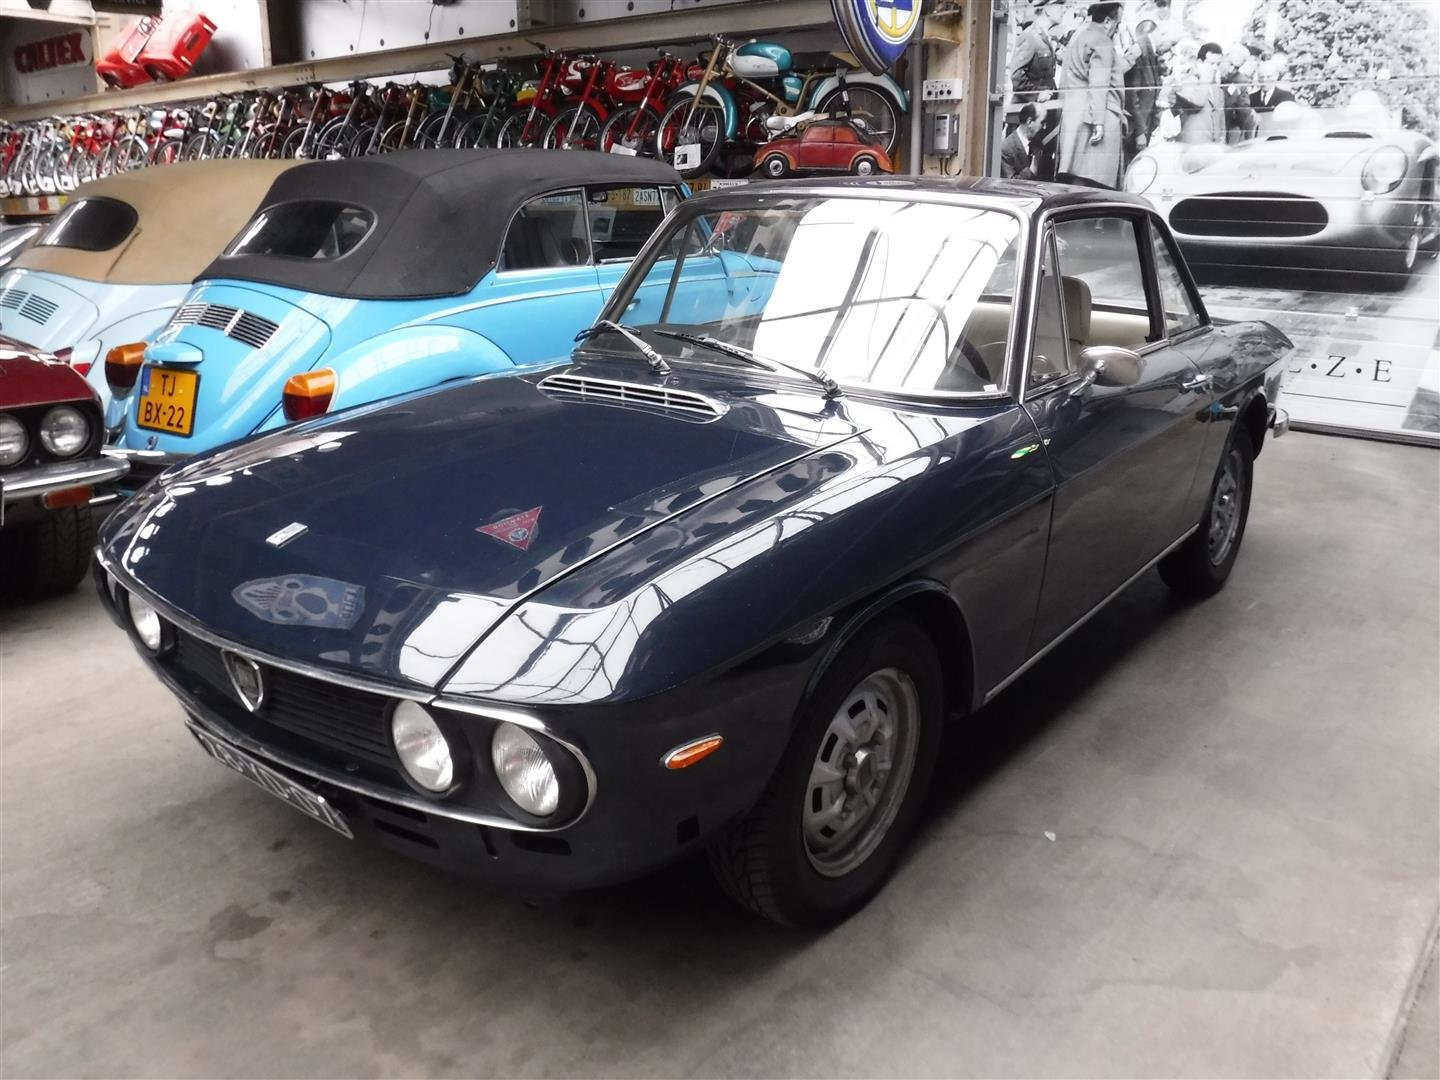 1974 Very nice Lancia Fulvia 1.3 S '74 For Sale (picture 2 of 6)